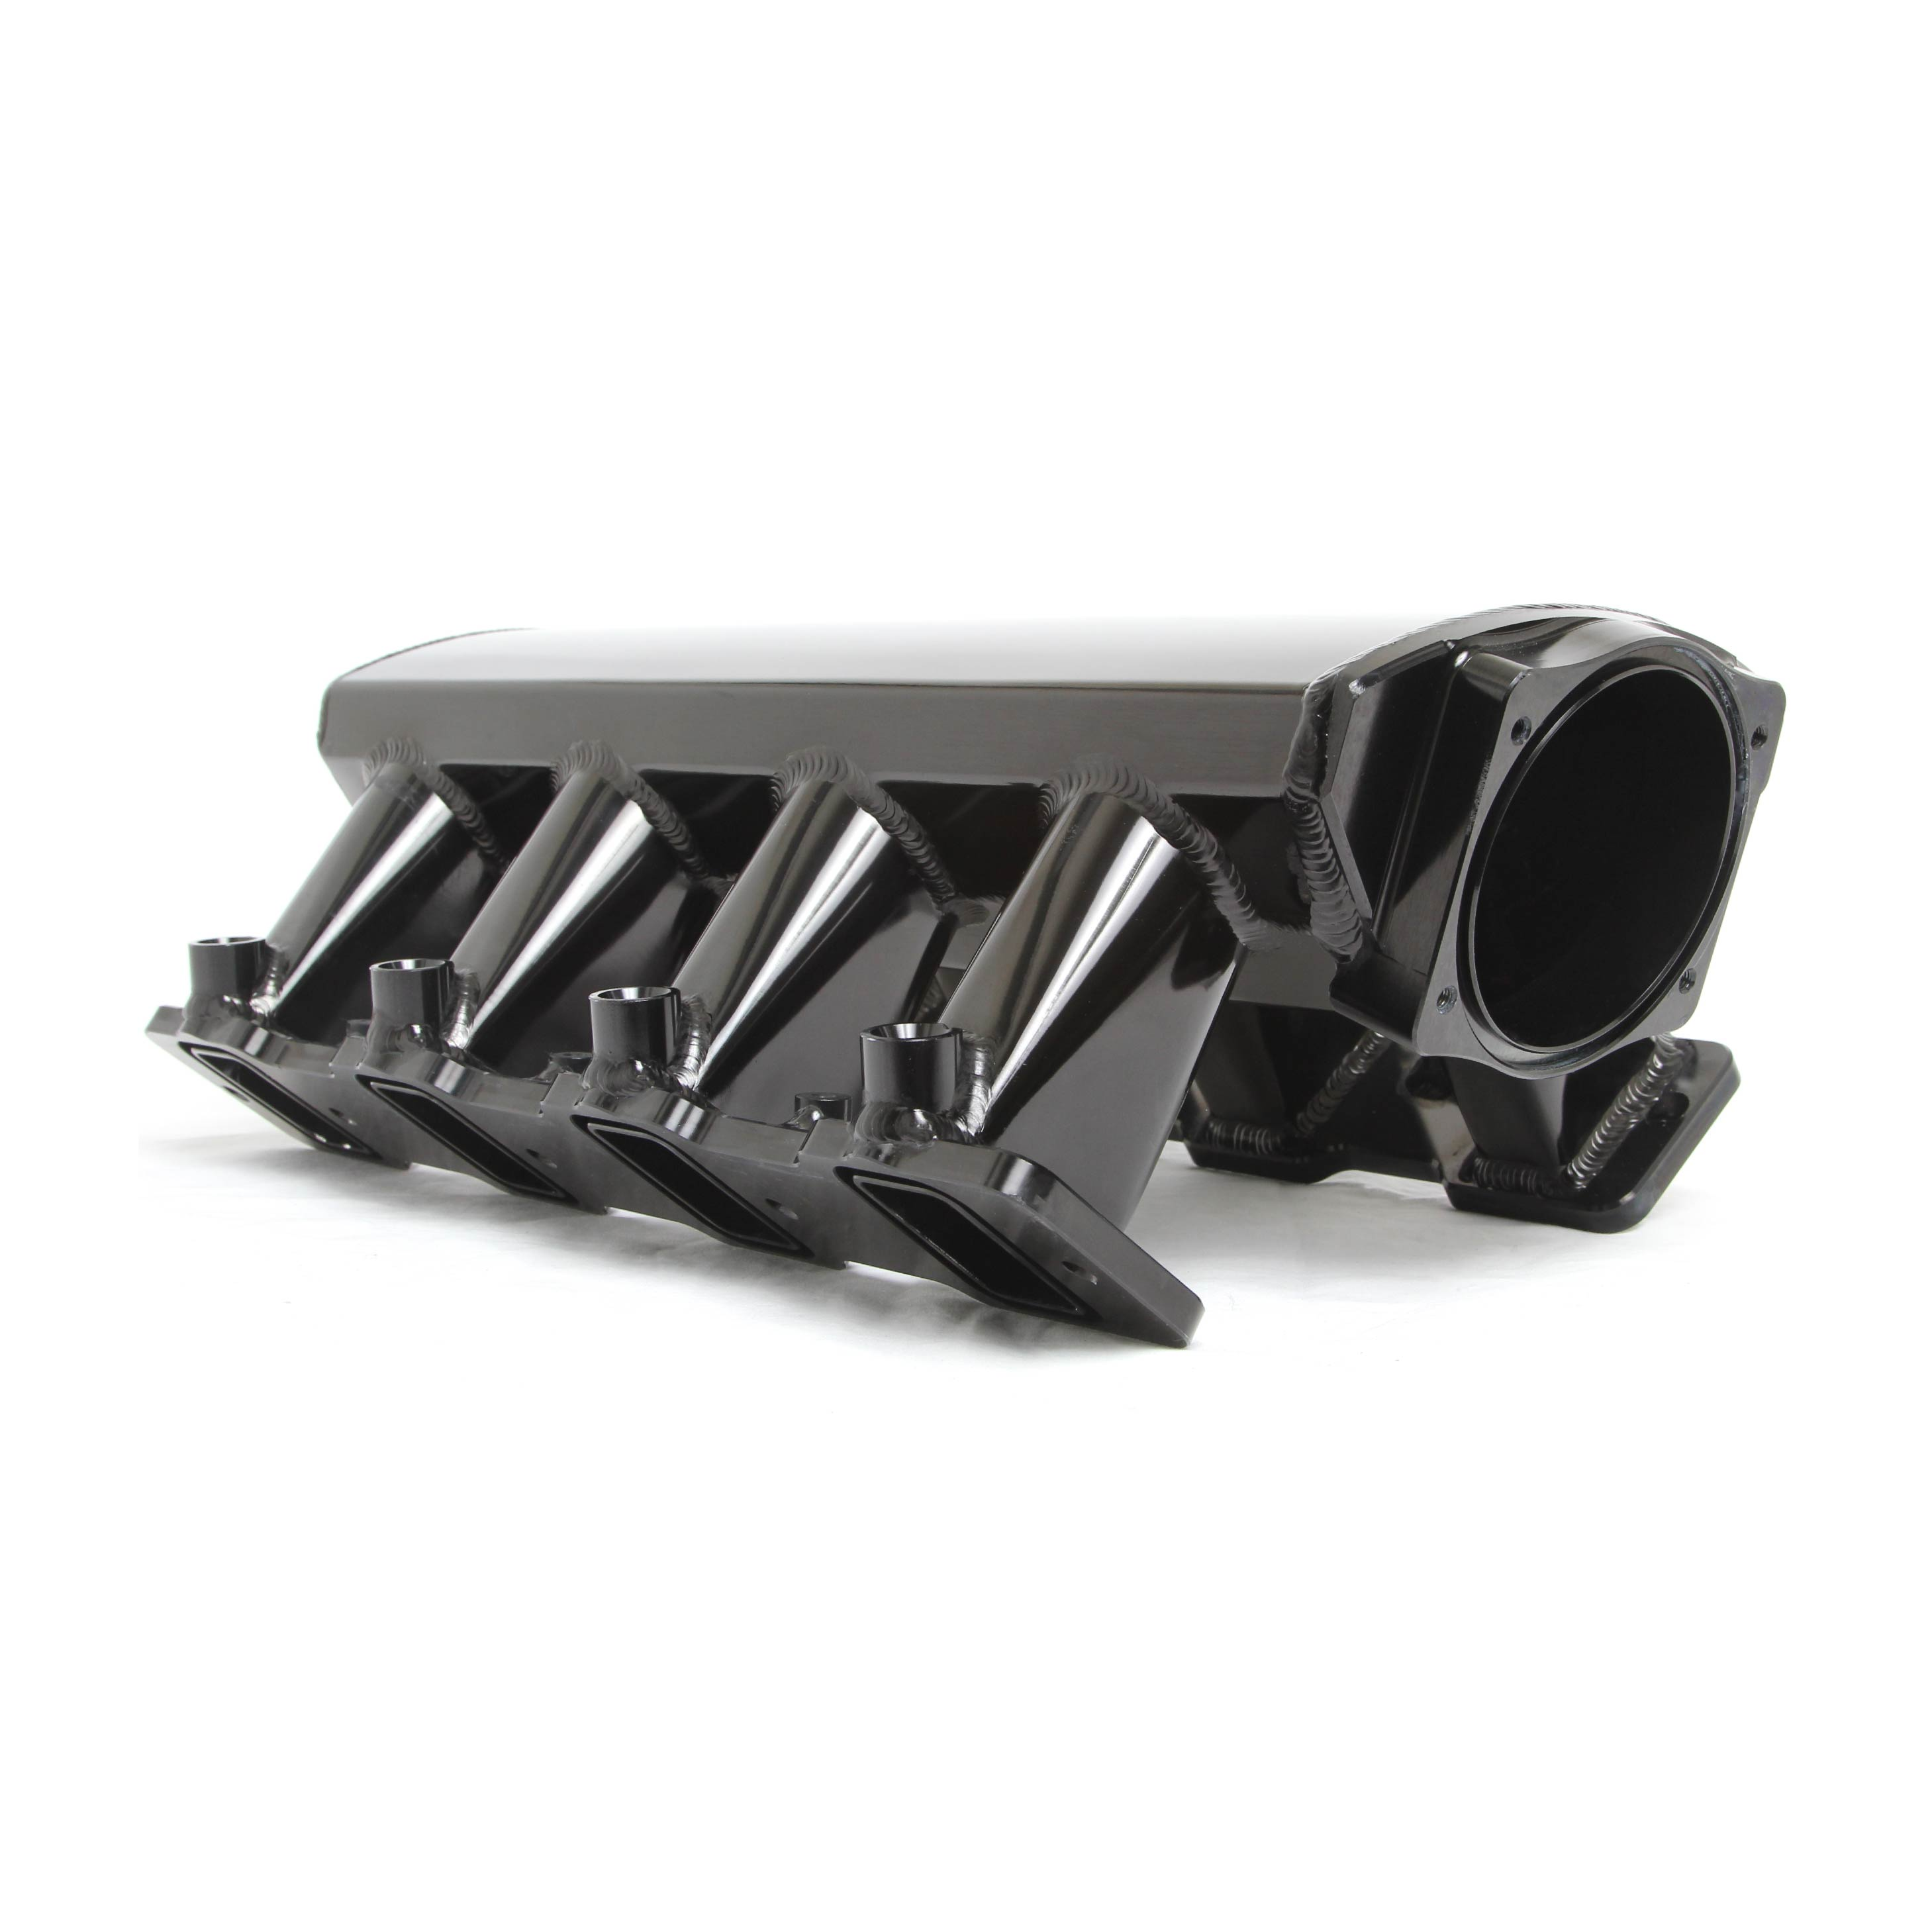 RPC LS7 102mm Fabricated Aluminum Intake Manifold